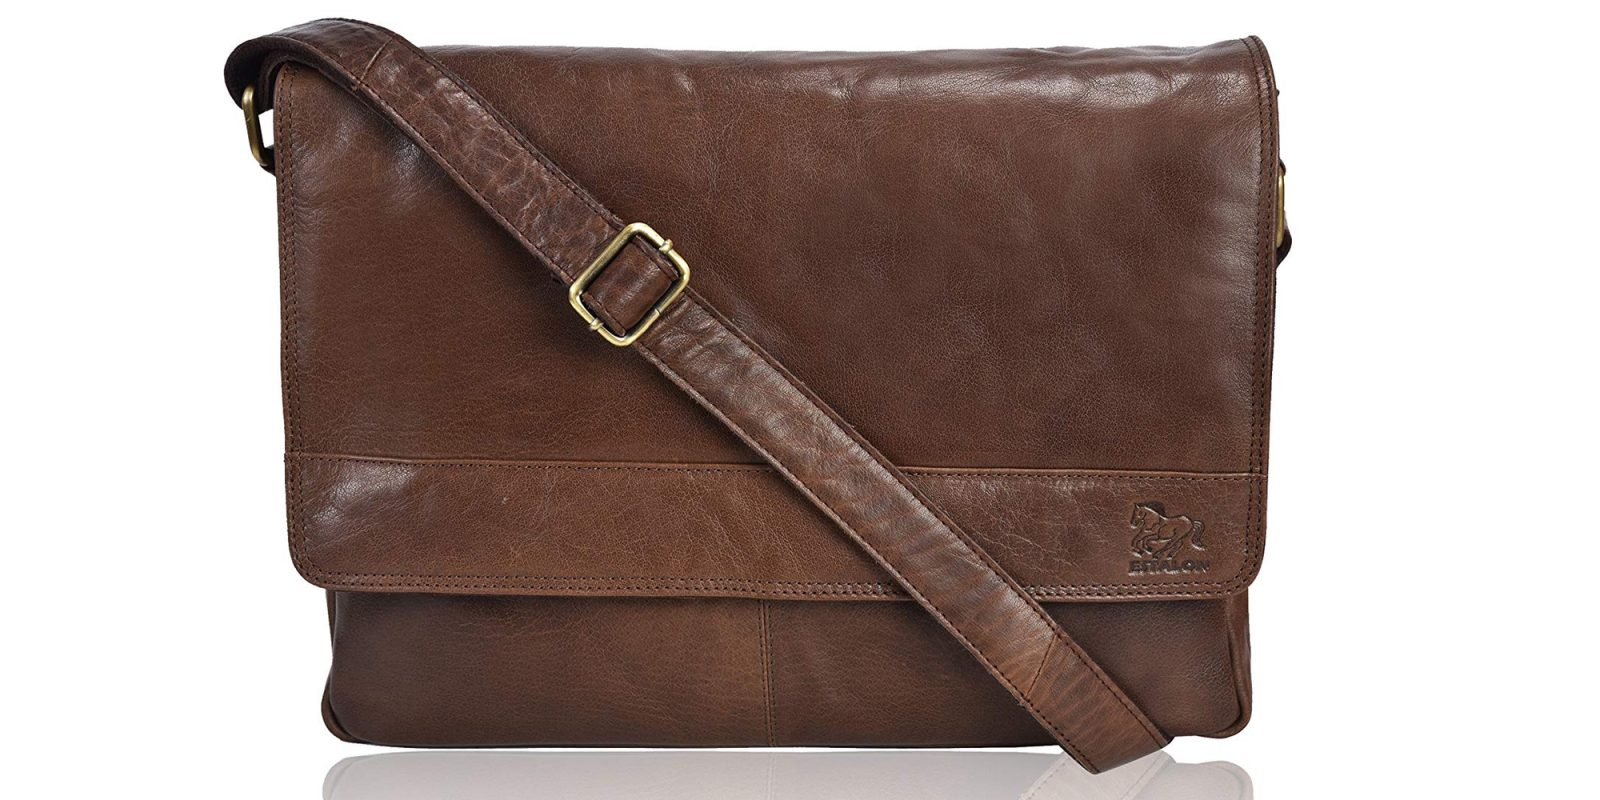 Today Only Save Up To 60 On Select Leather Bags Wallets And More Starting At 10